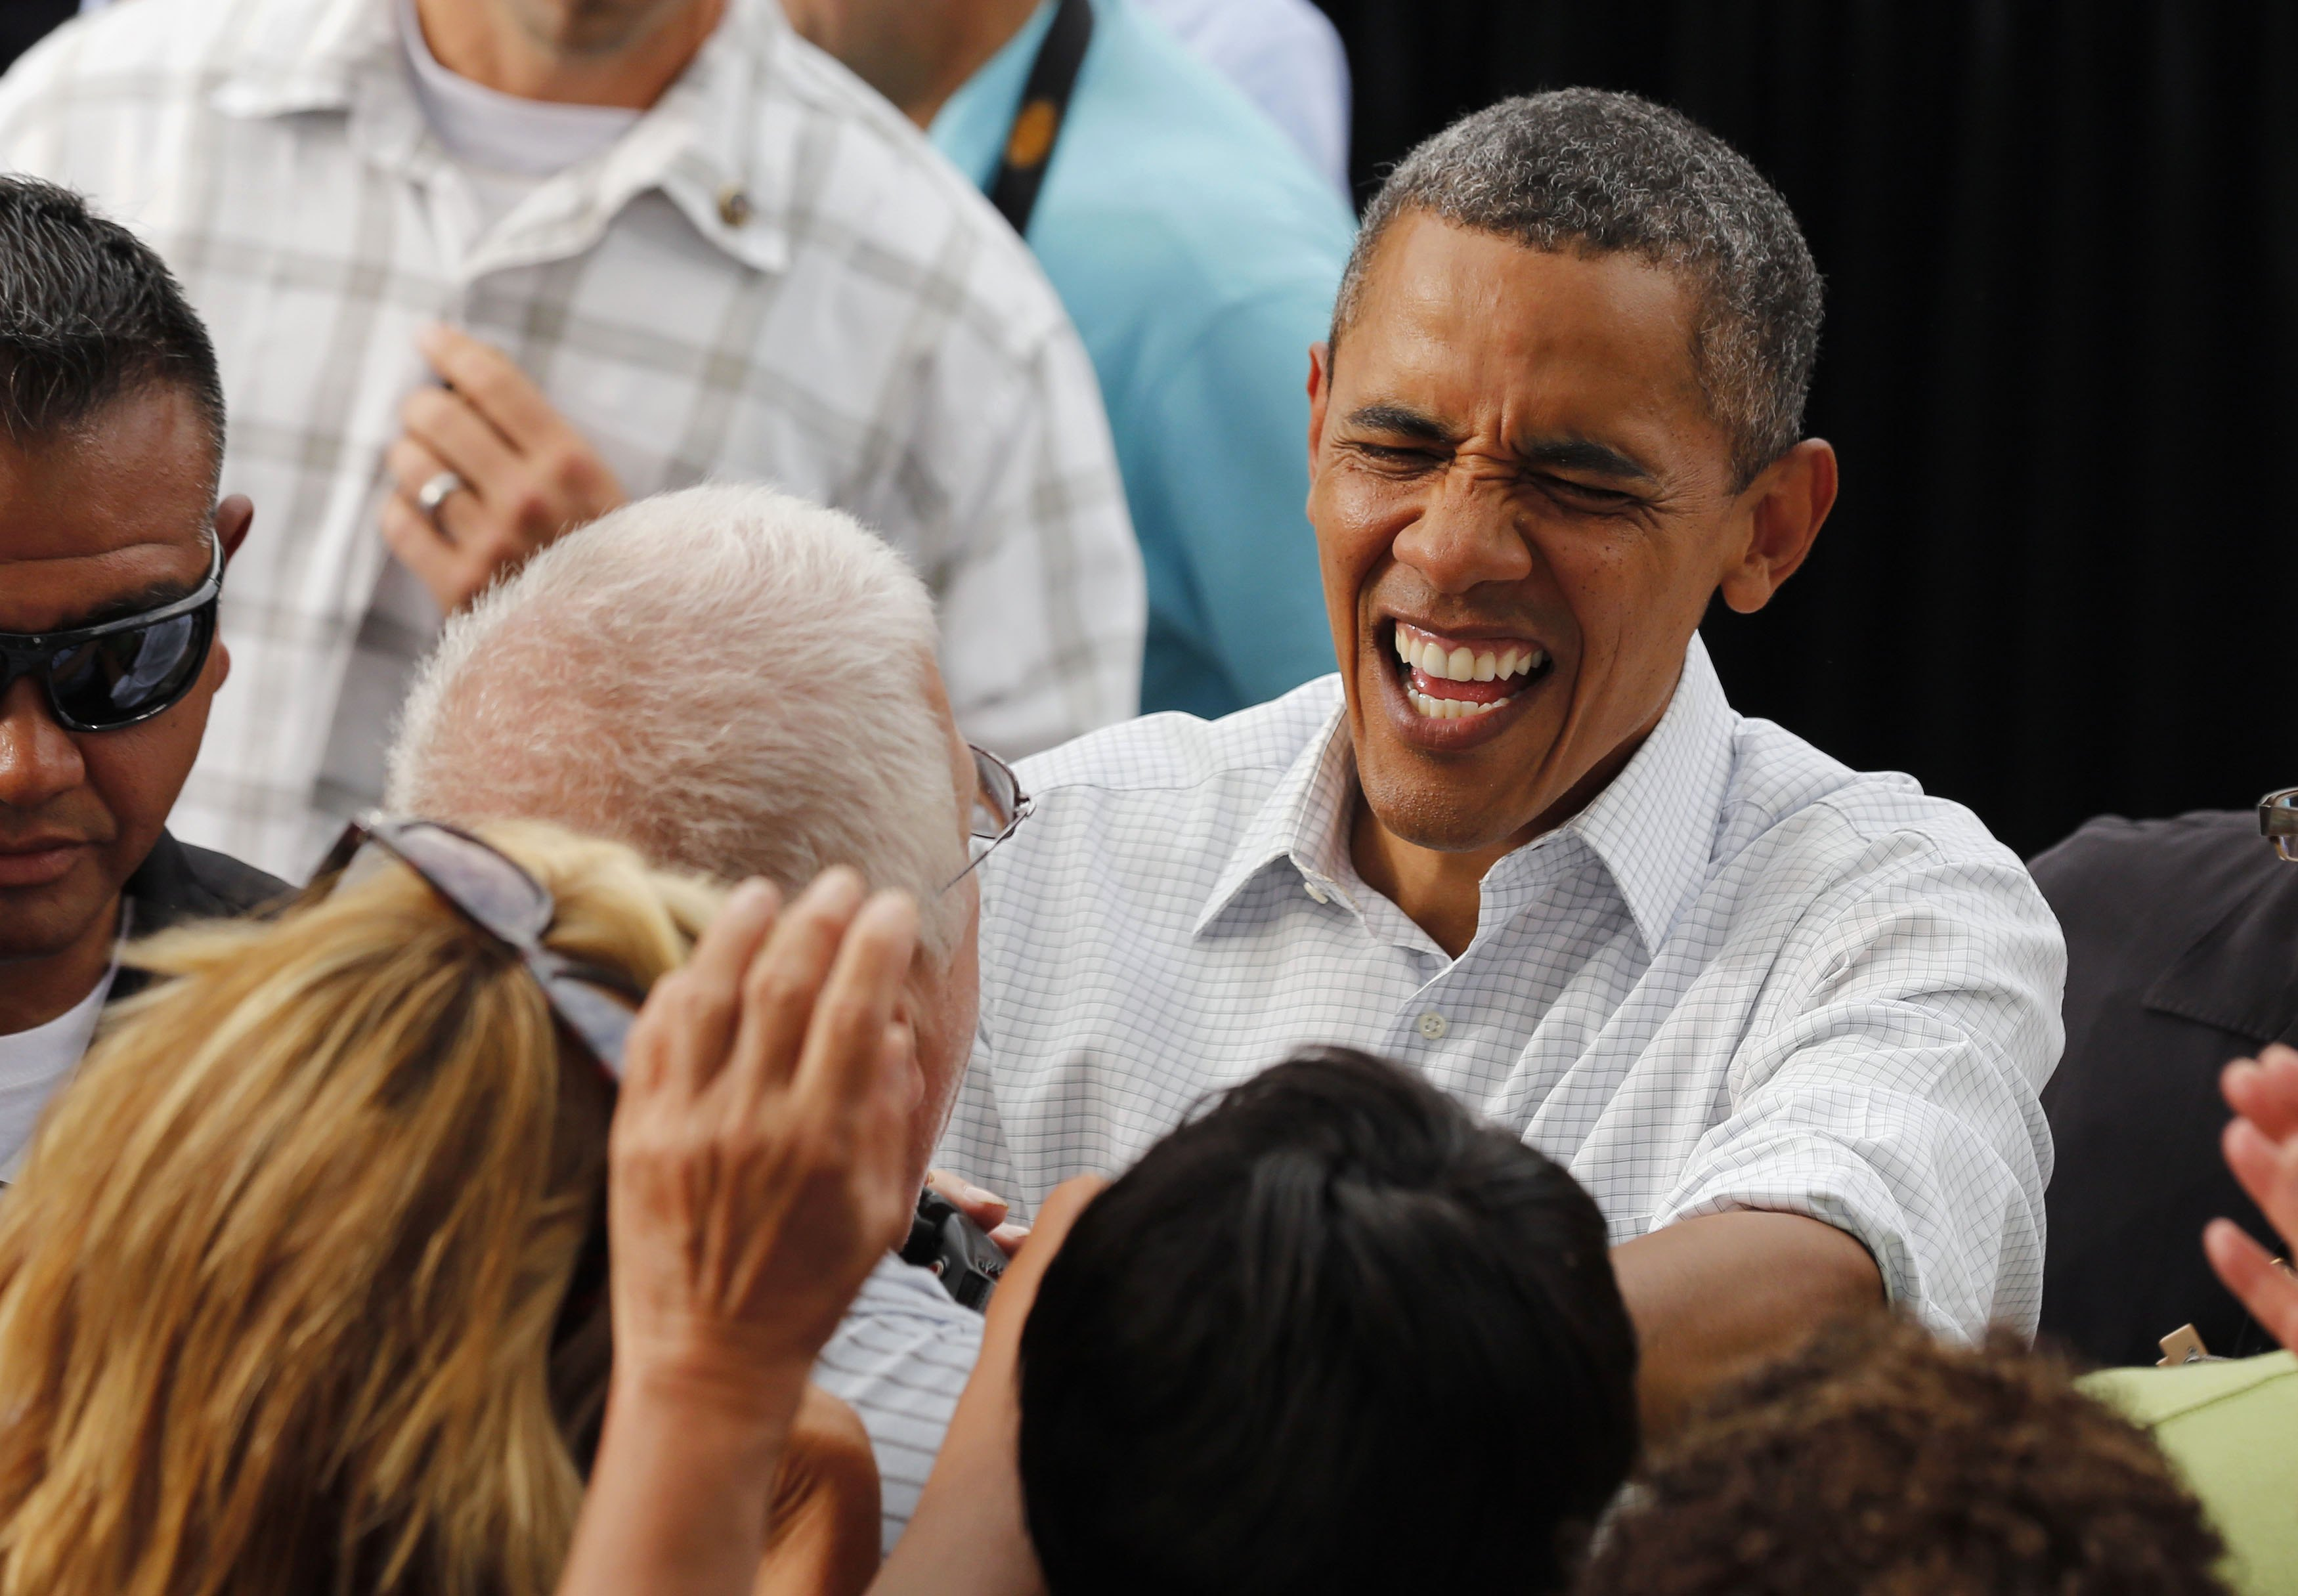 President Barack Obama greets audience members at a campaign event in Iowa (Larry Downing/Reuters)